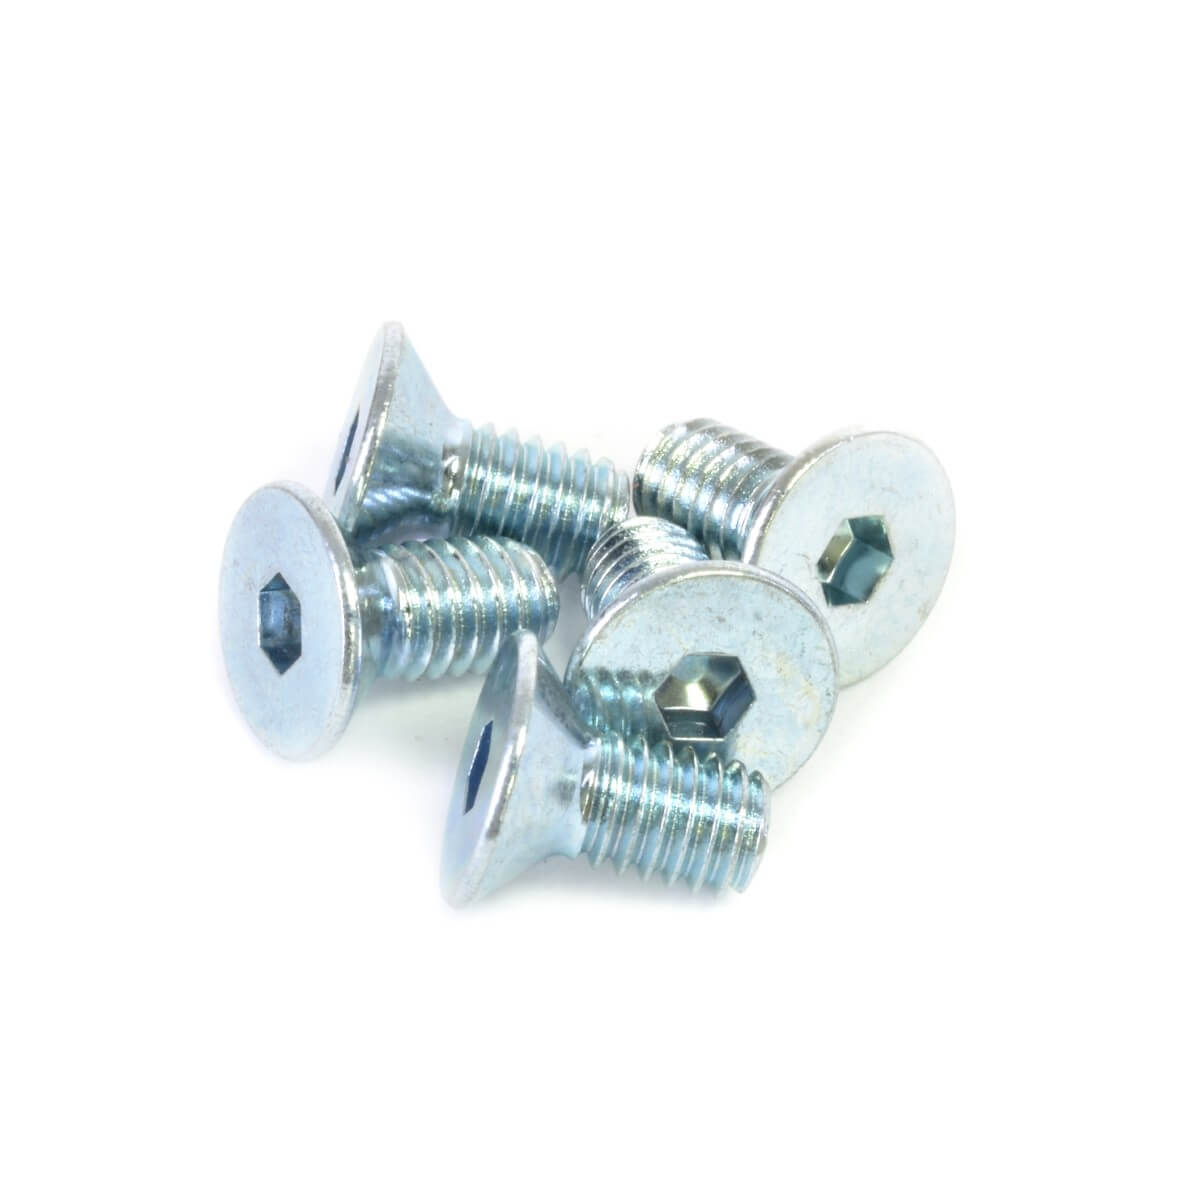 M4x8 Flat Head Derailleur Hanger Screw